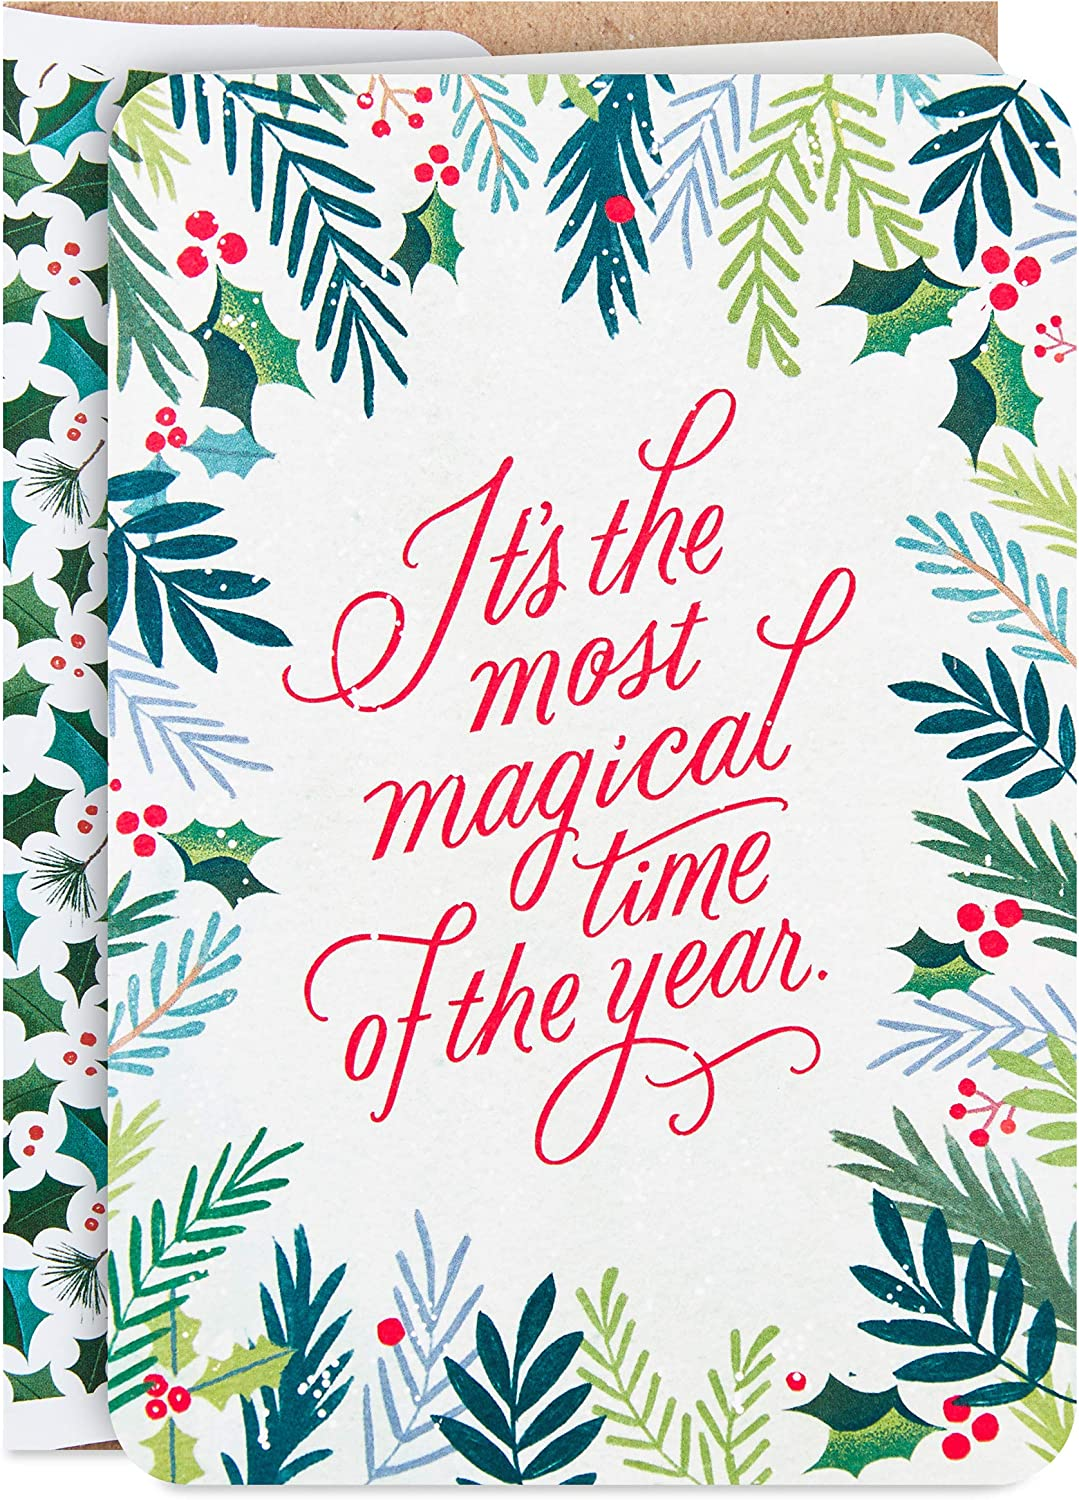 16 Cards and 17 Envelopes Hallmark Boxed Christmas Cards Most Magical Time 5XPX9463